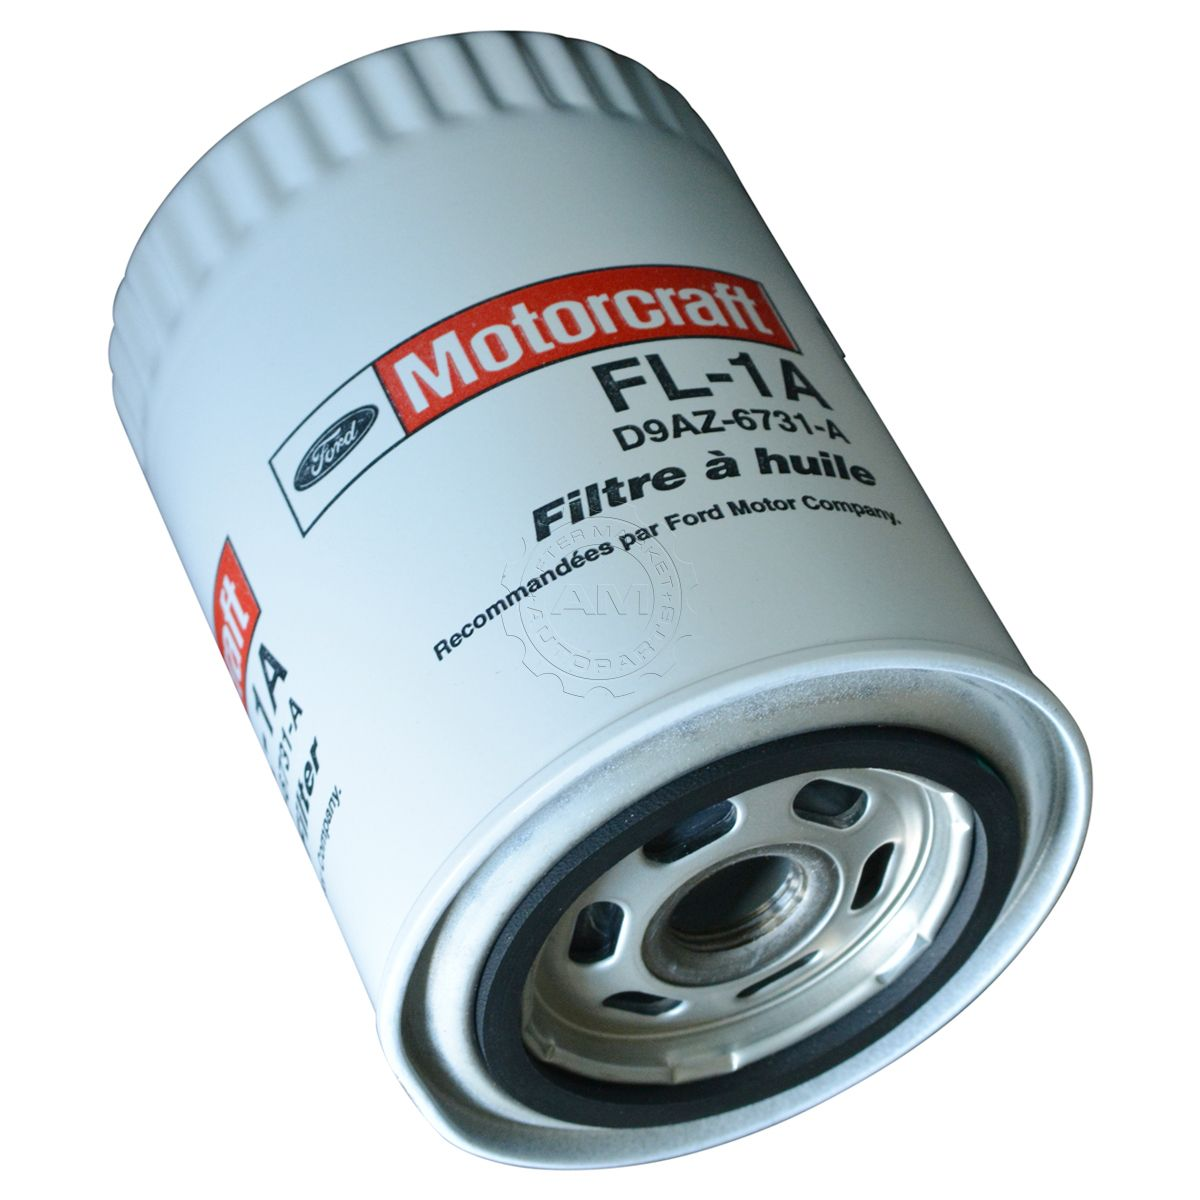 motorcraft fl1a engine oil filter for ford lincoln mercury new | ebay engine fuel filters